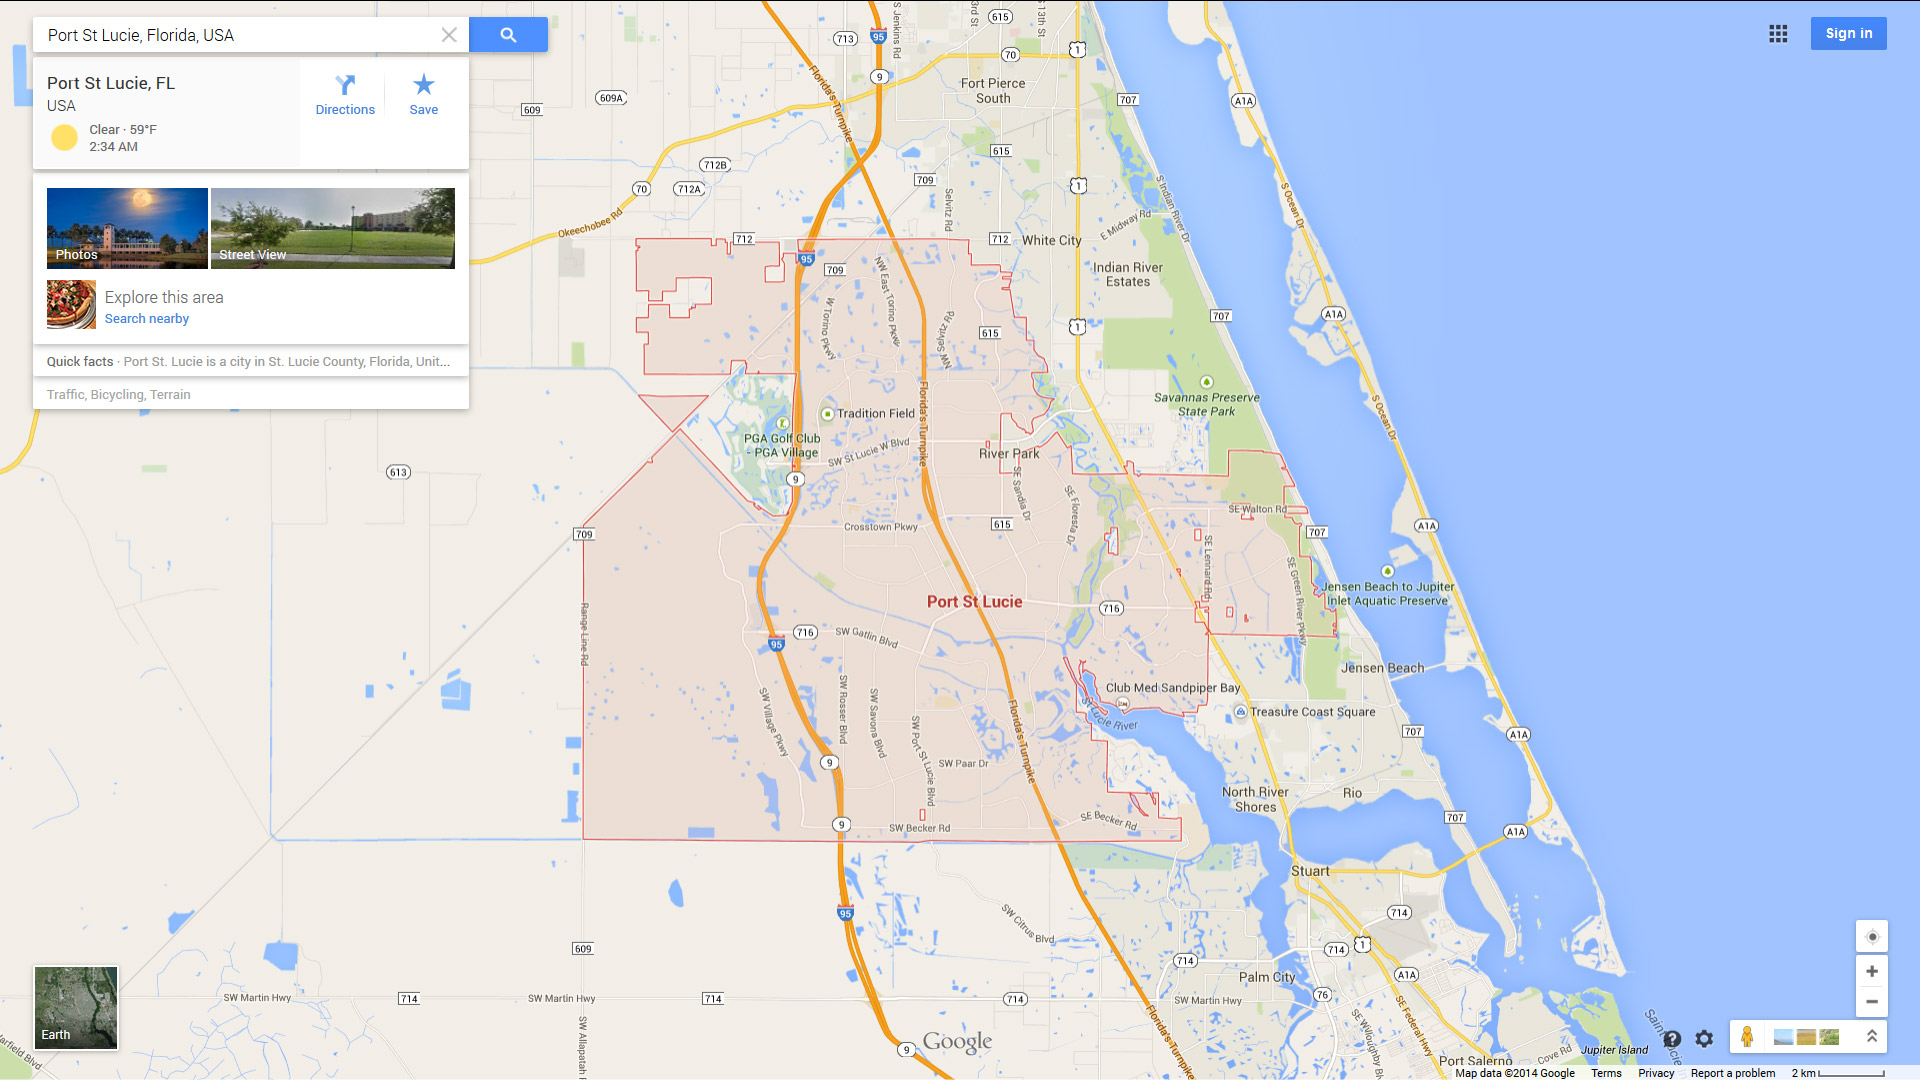 Port St. Lucie, Florida Map - Florida Map With Port St Lucie